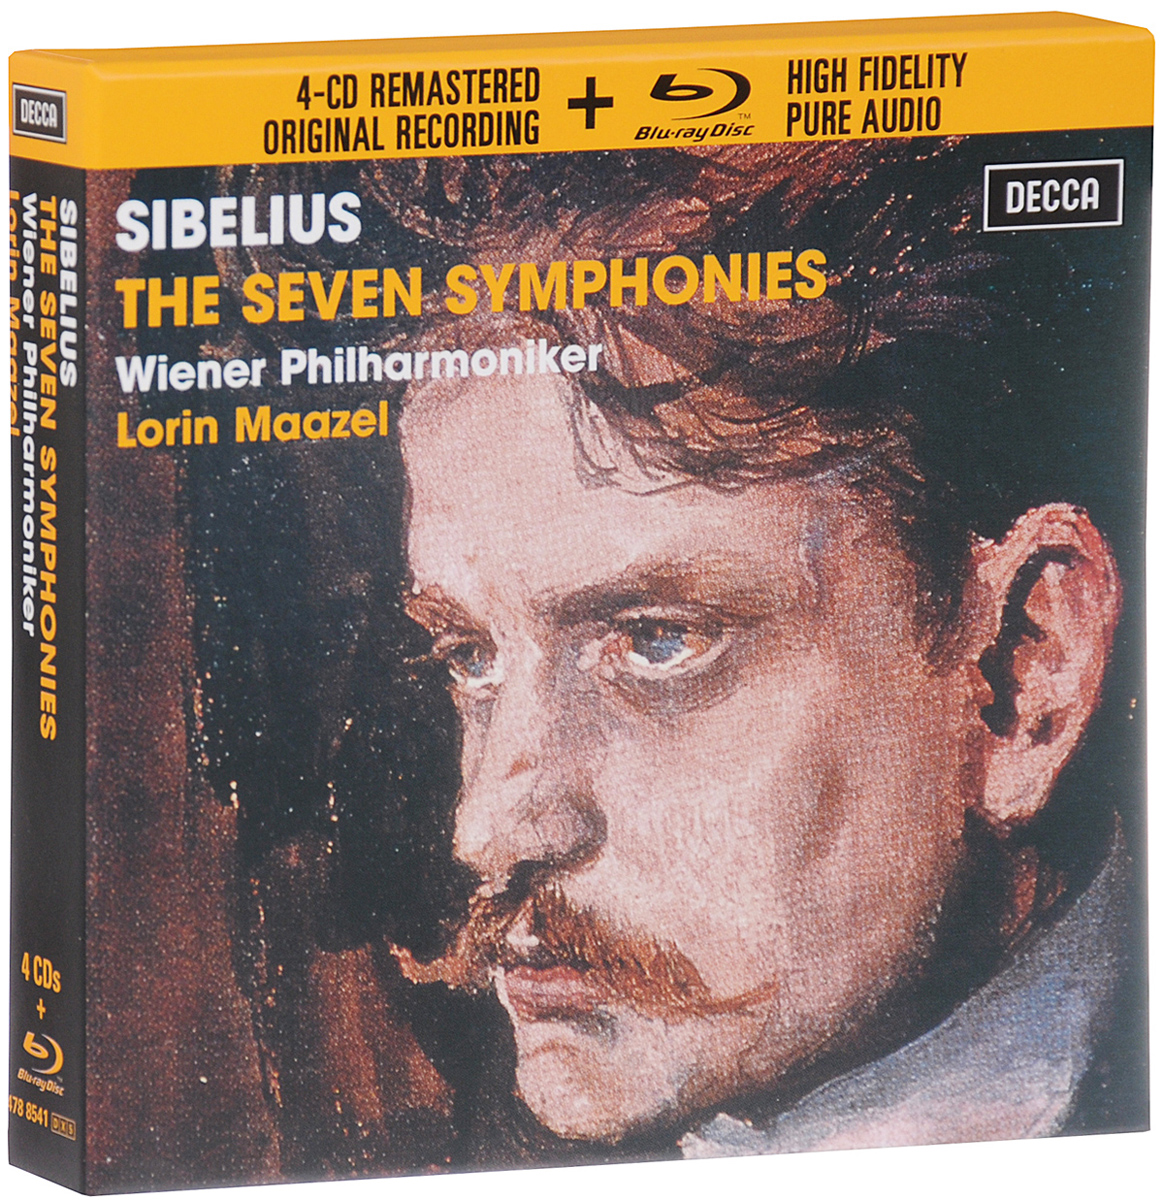 Лорин Маазель,Wiener Philharmoniker Lorin Maazel. Sibelius. The Seven Symphonies. Limited Edition (4 CD + Blu-Ray Audio) 6av6 642 0dc01 1ax0 op 177b key panel 90 days warranty